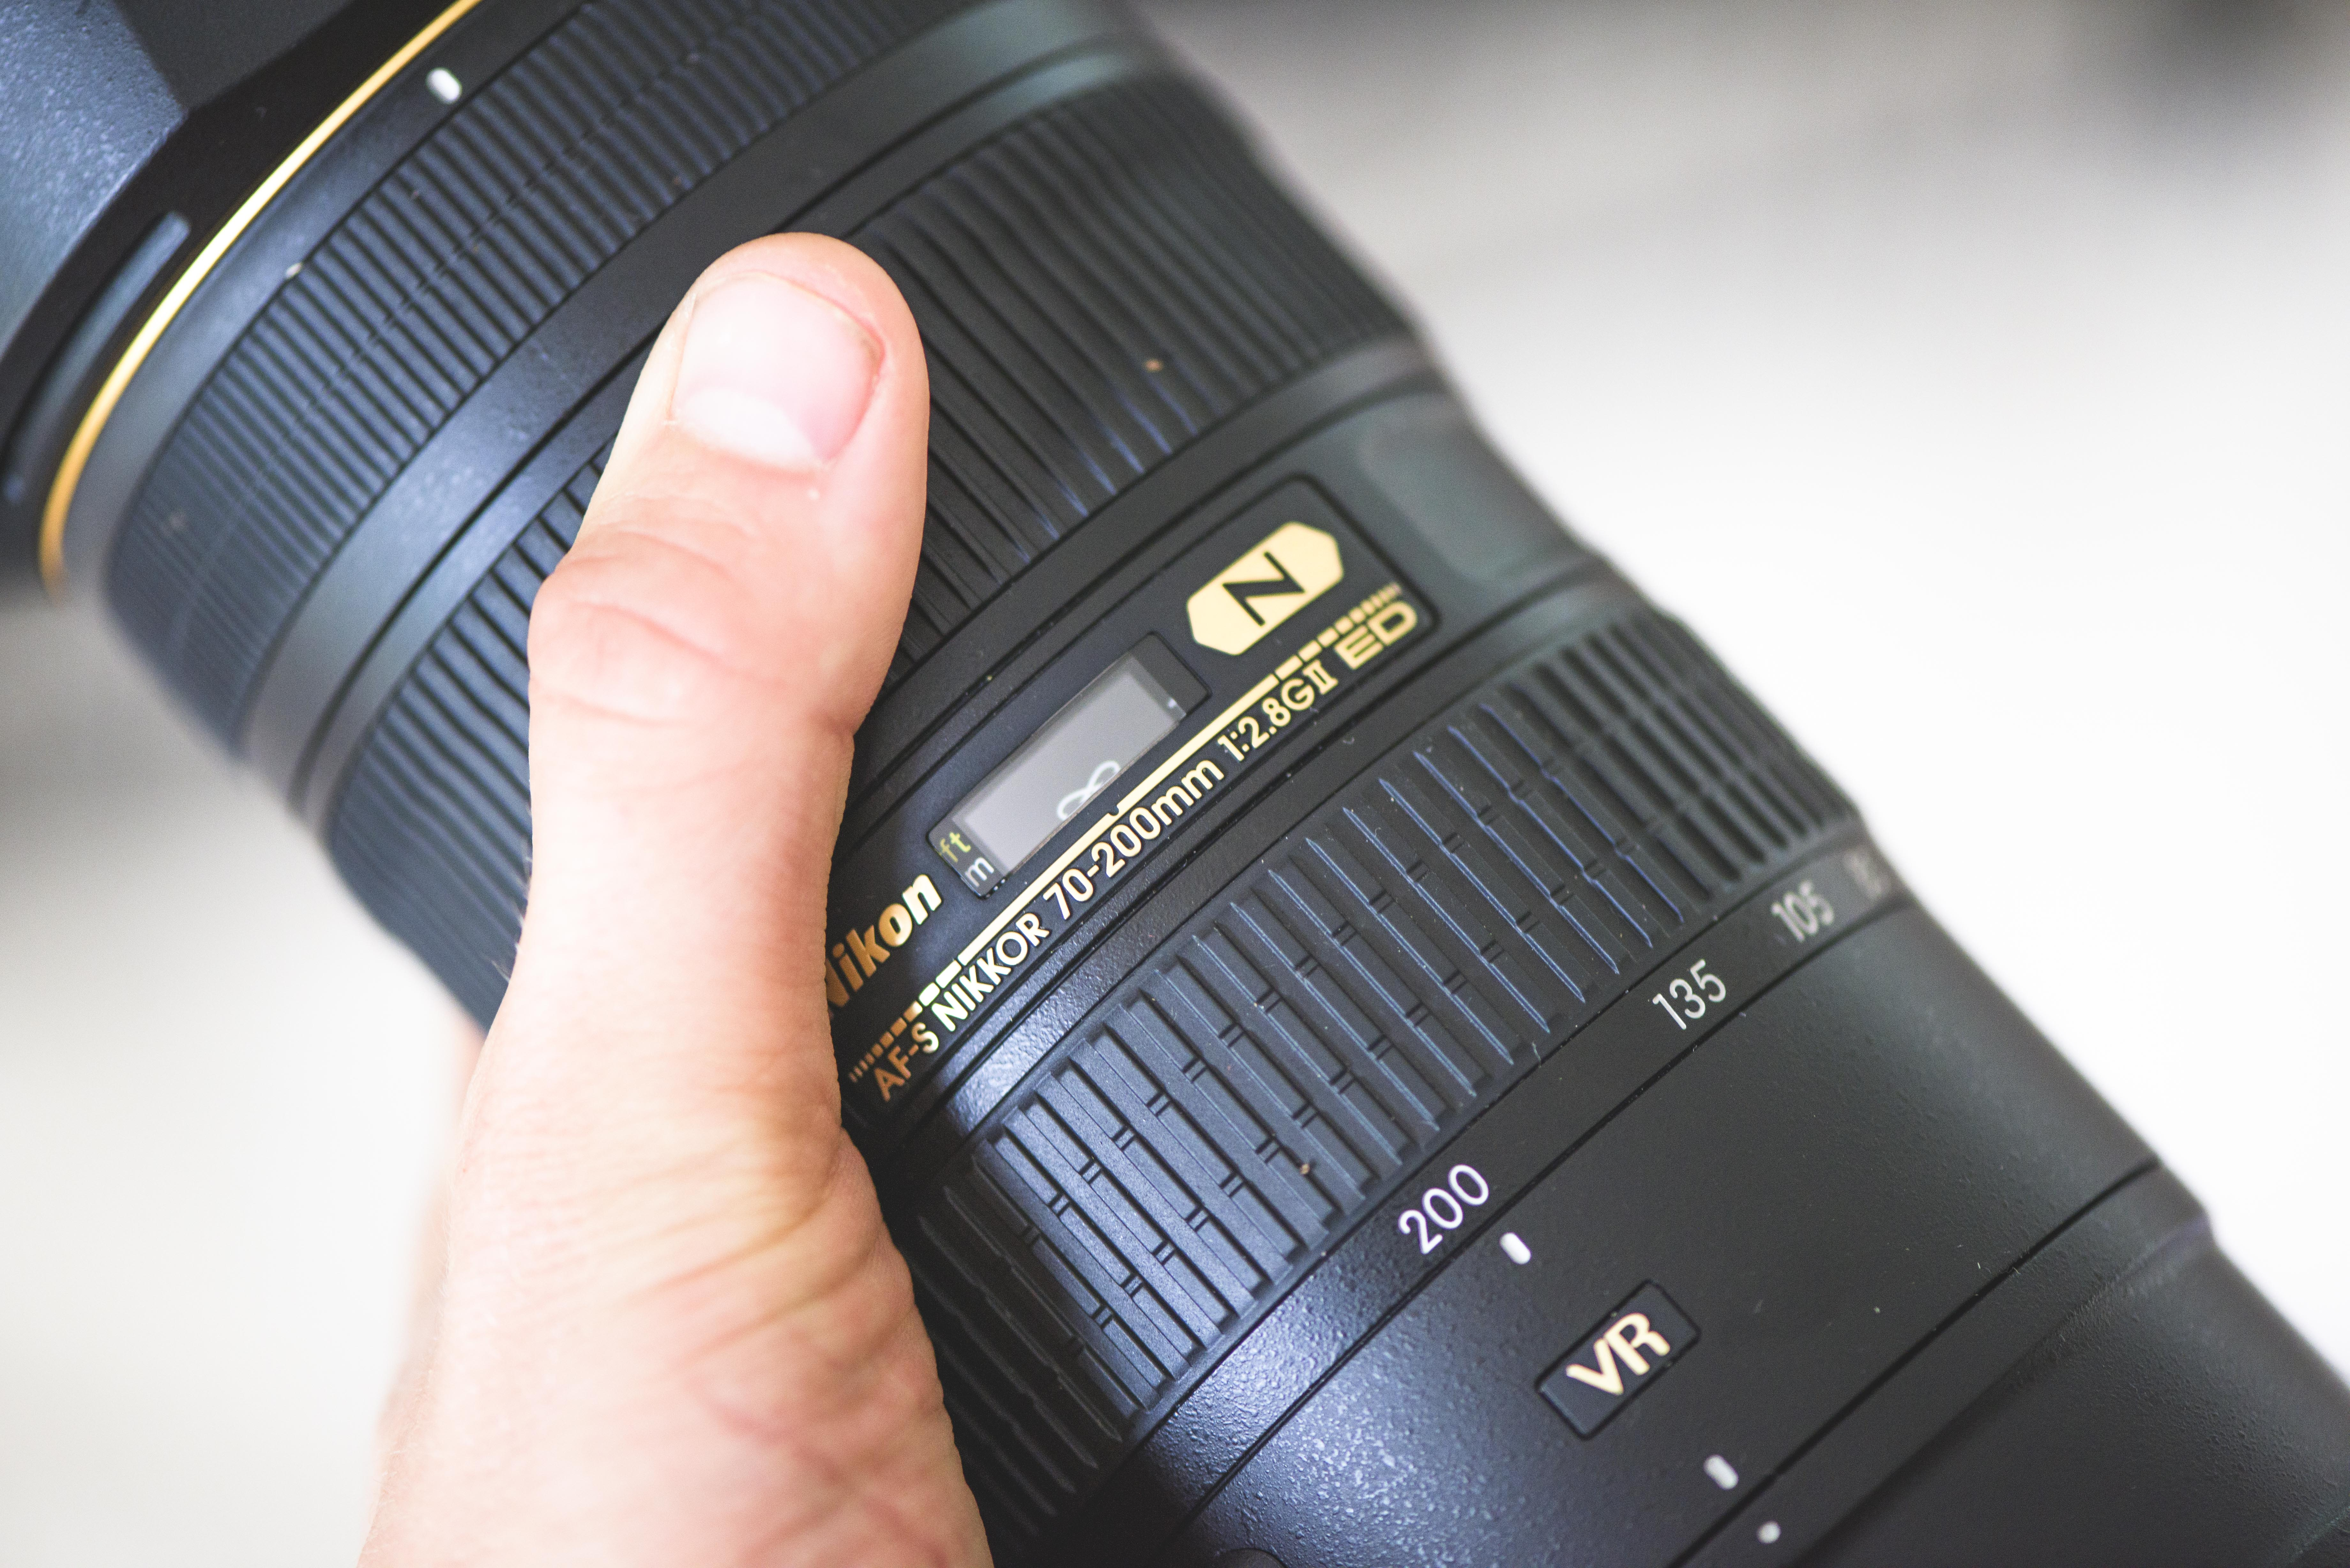 Holding a telephoto lens